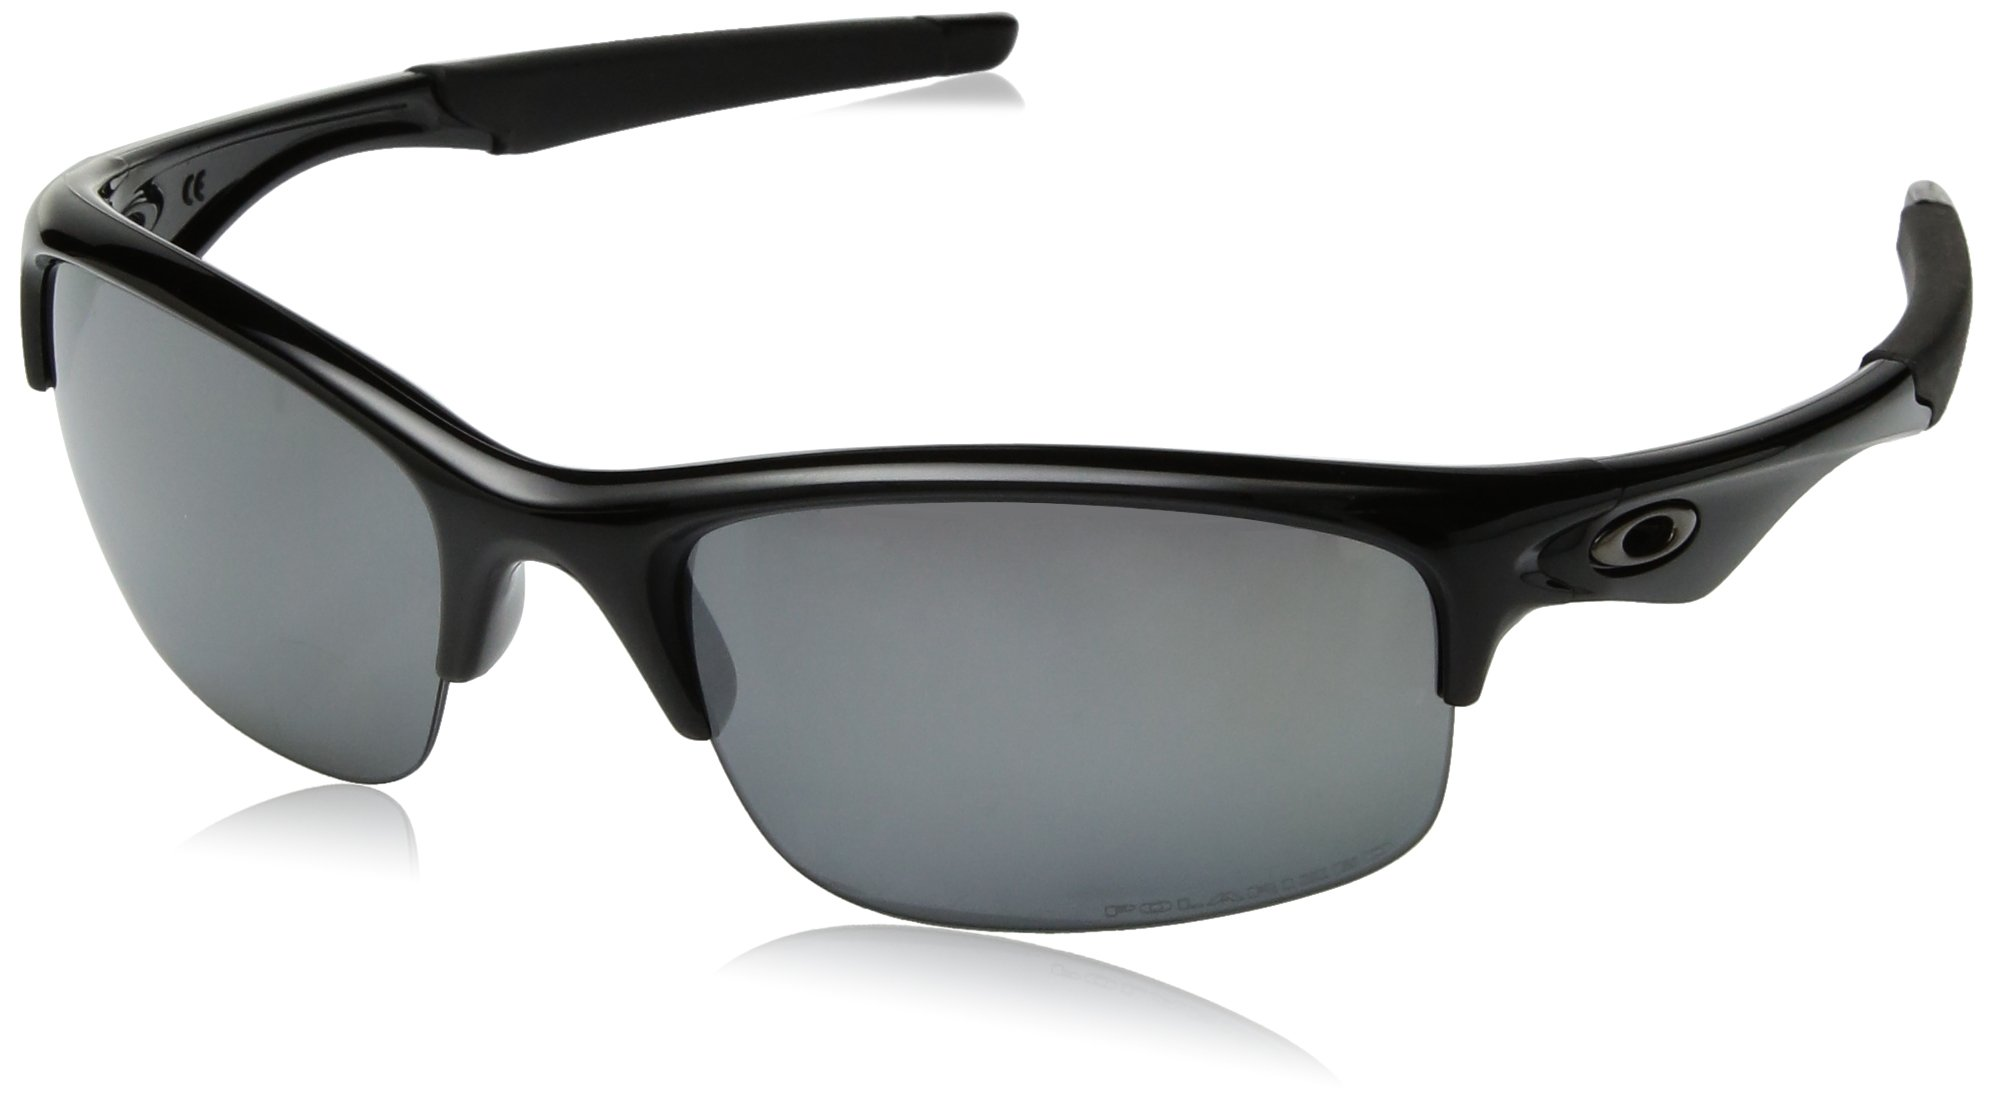 Oakley Polarized Bottle Rocket Polished Black/Black Iridium Polarized Sunglasses by Oakley